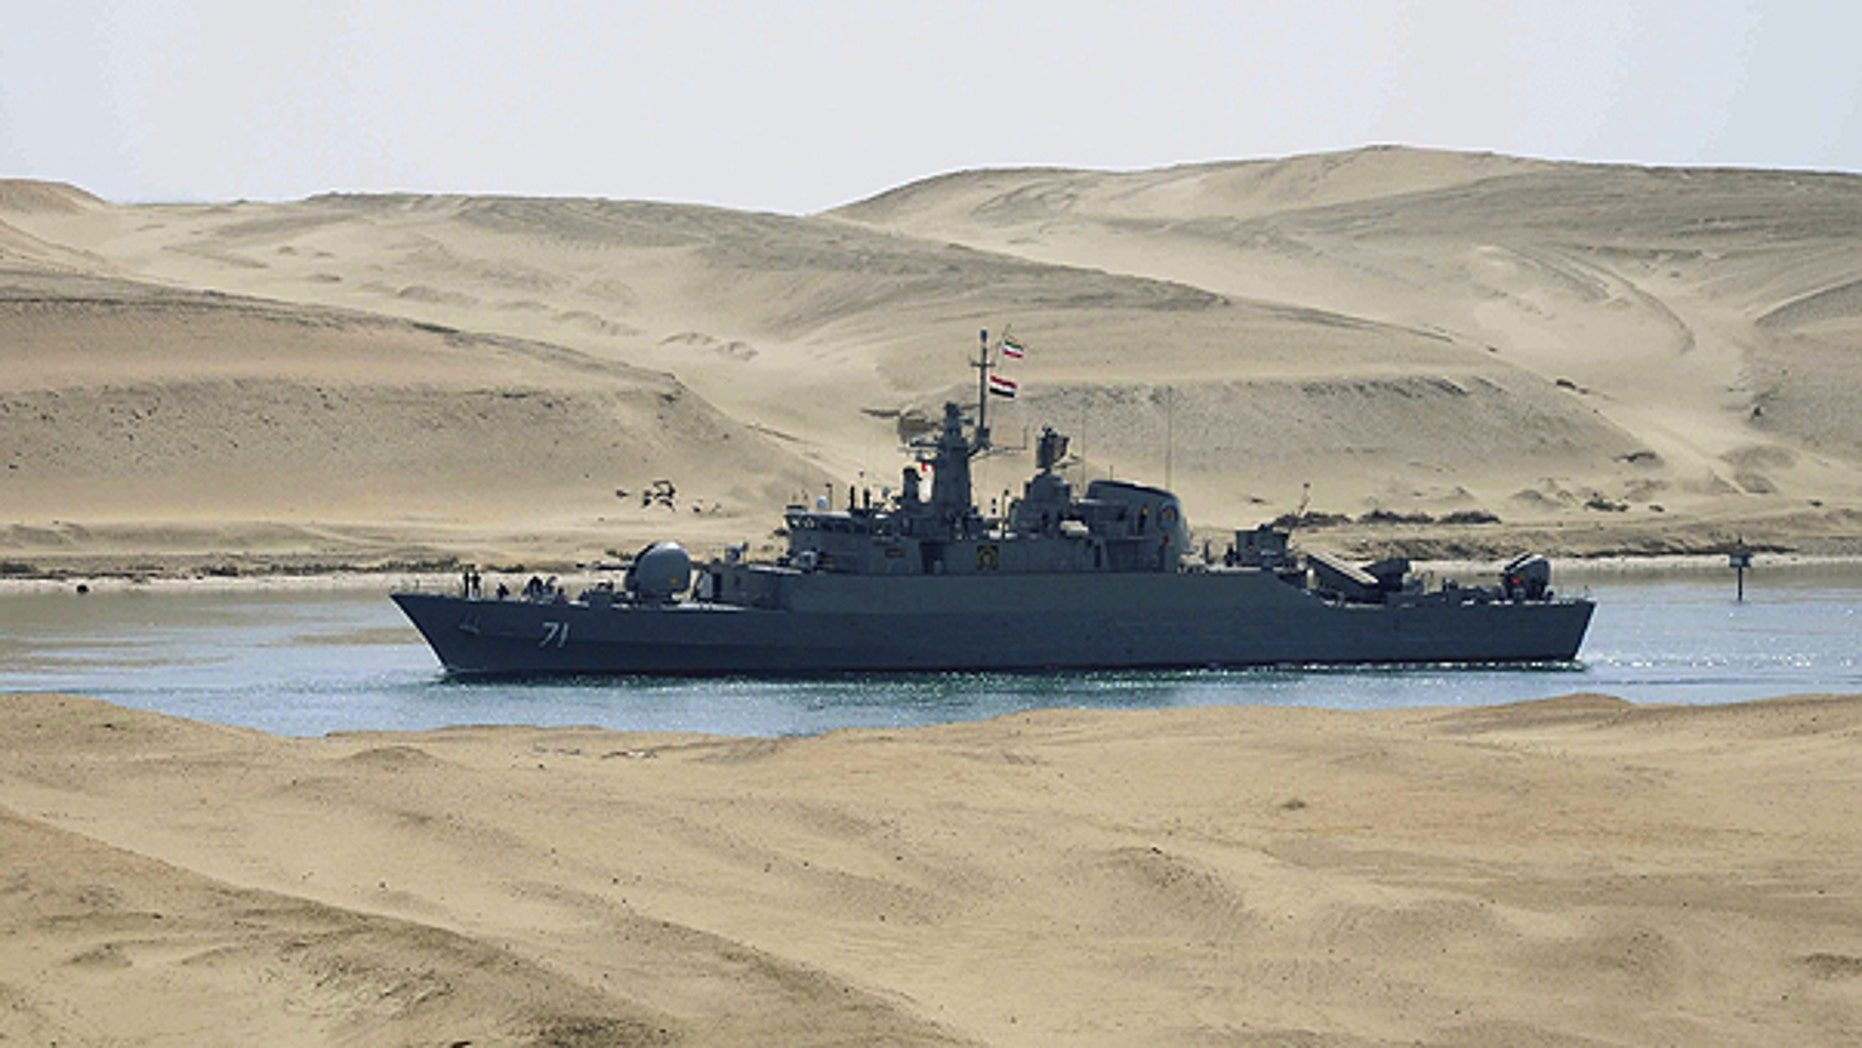 Feb. 22: The Iranian navy frigate IS Alvand passes through the Suez canal at Ismailia, Egypt.